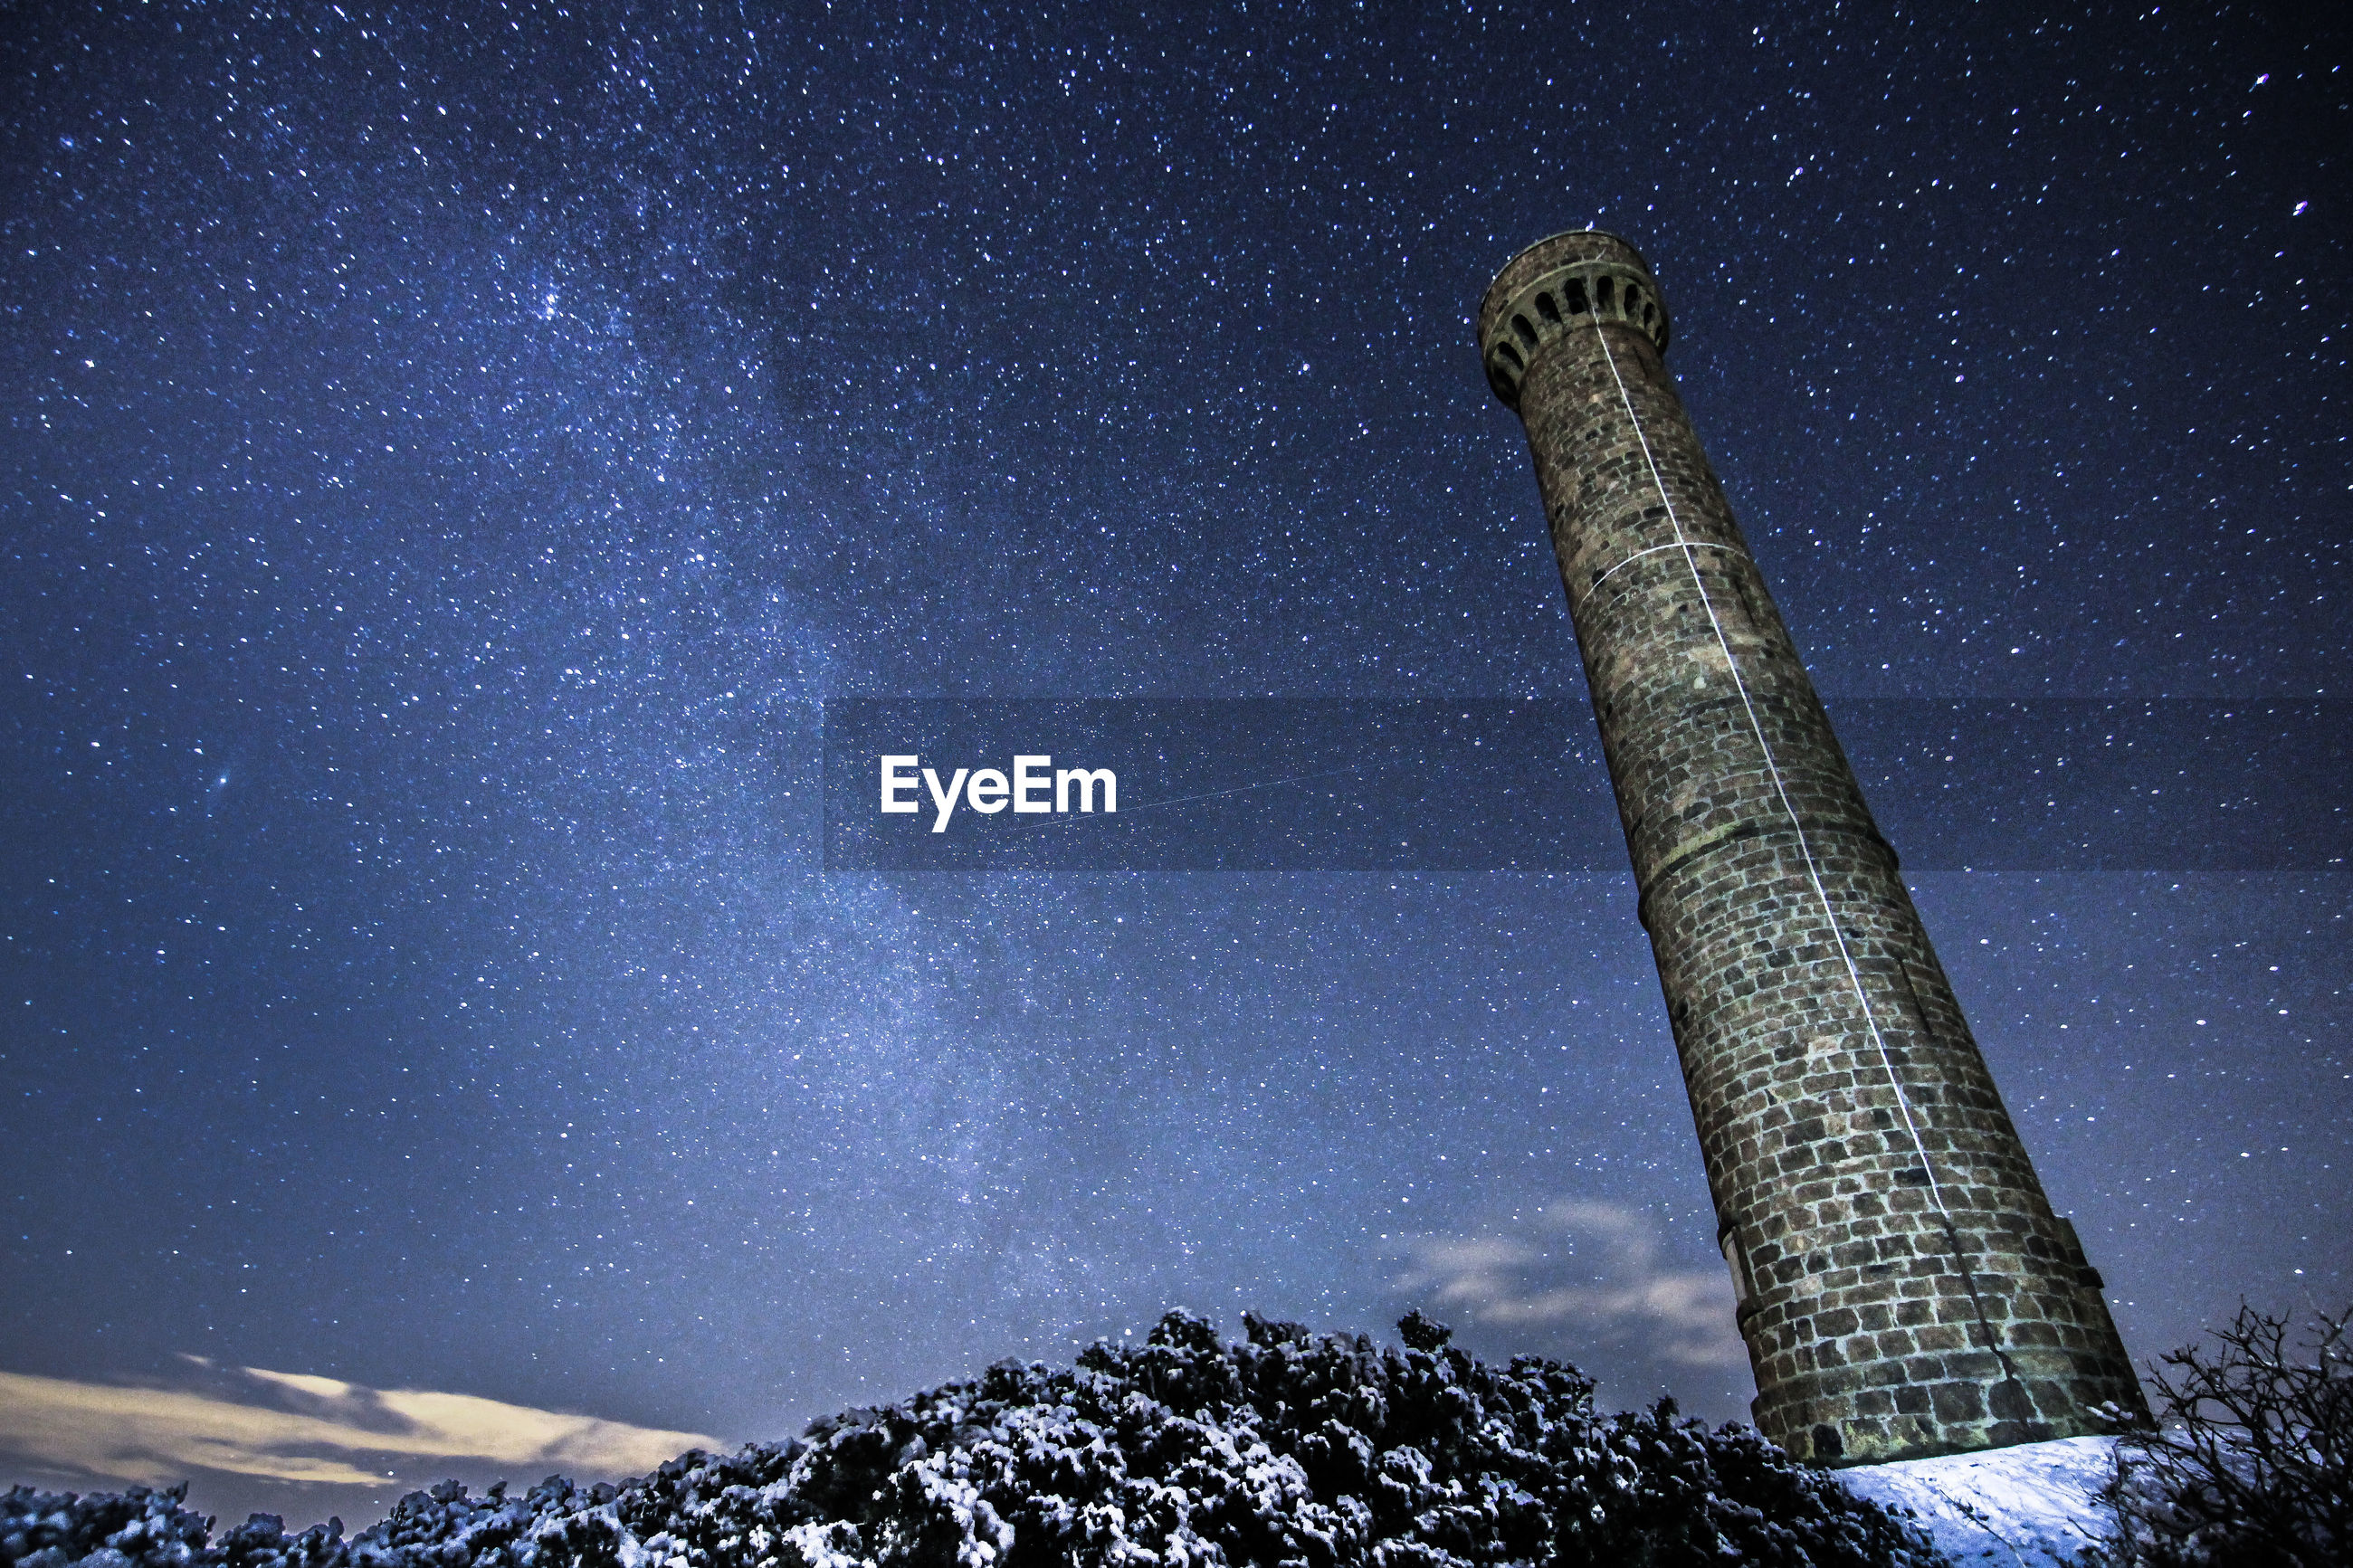 Low angle view of hopetoun monument against star field at night during winter